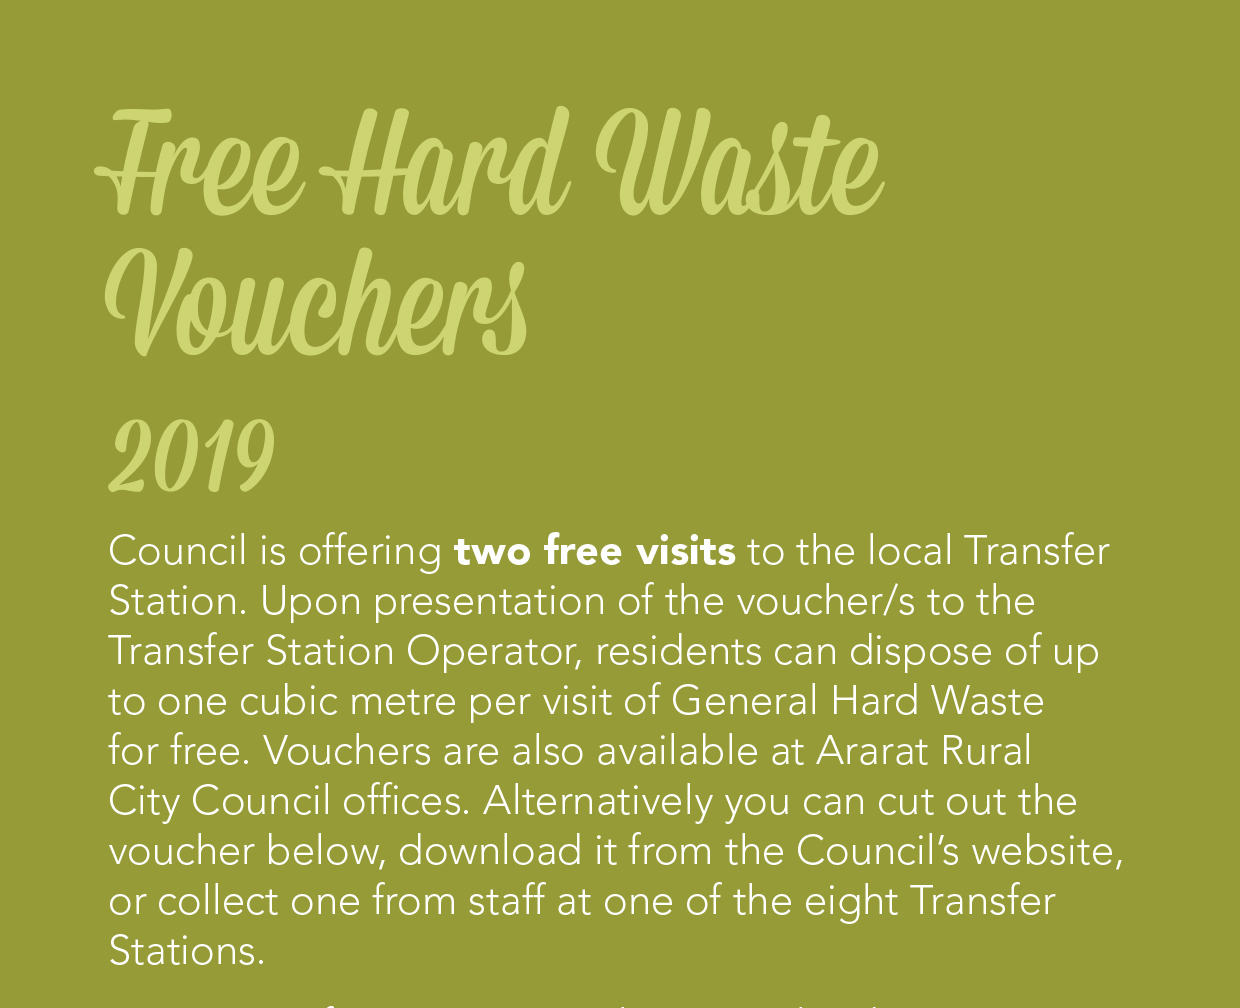 Free waste voucher now available